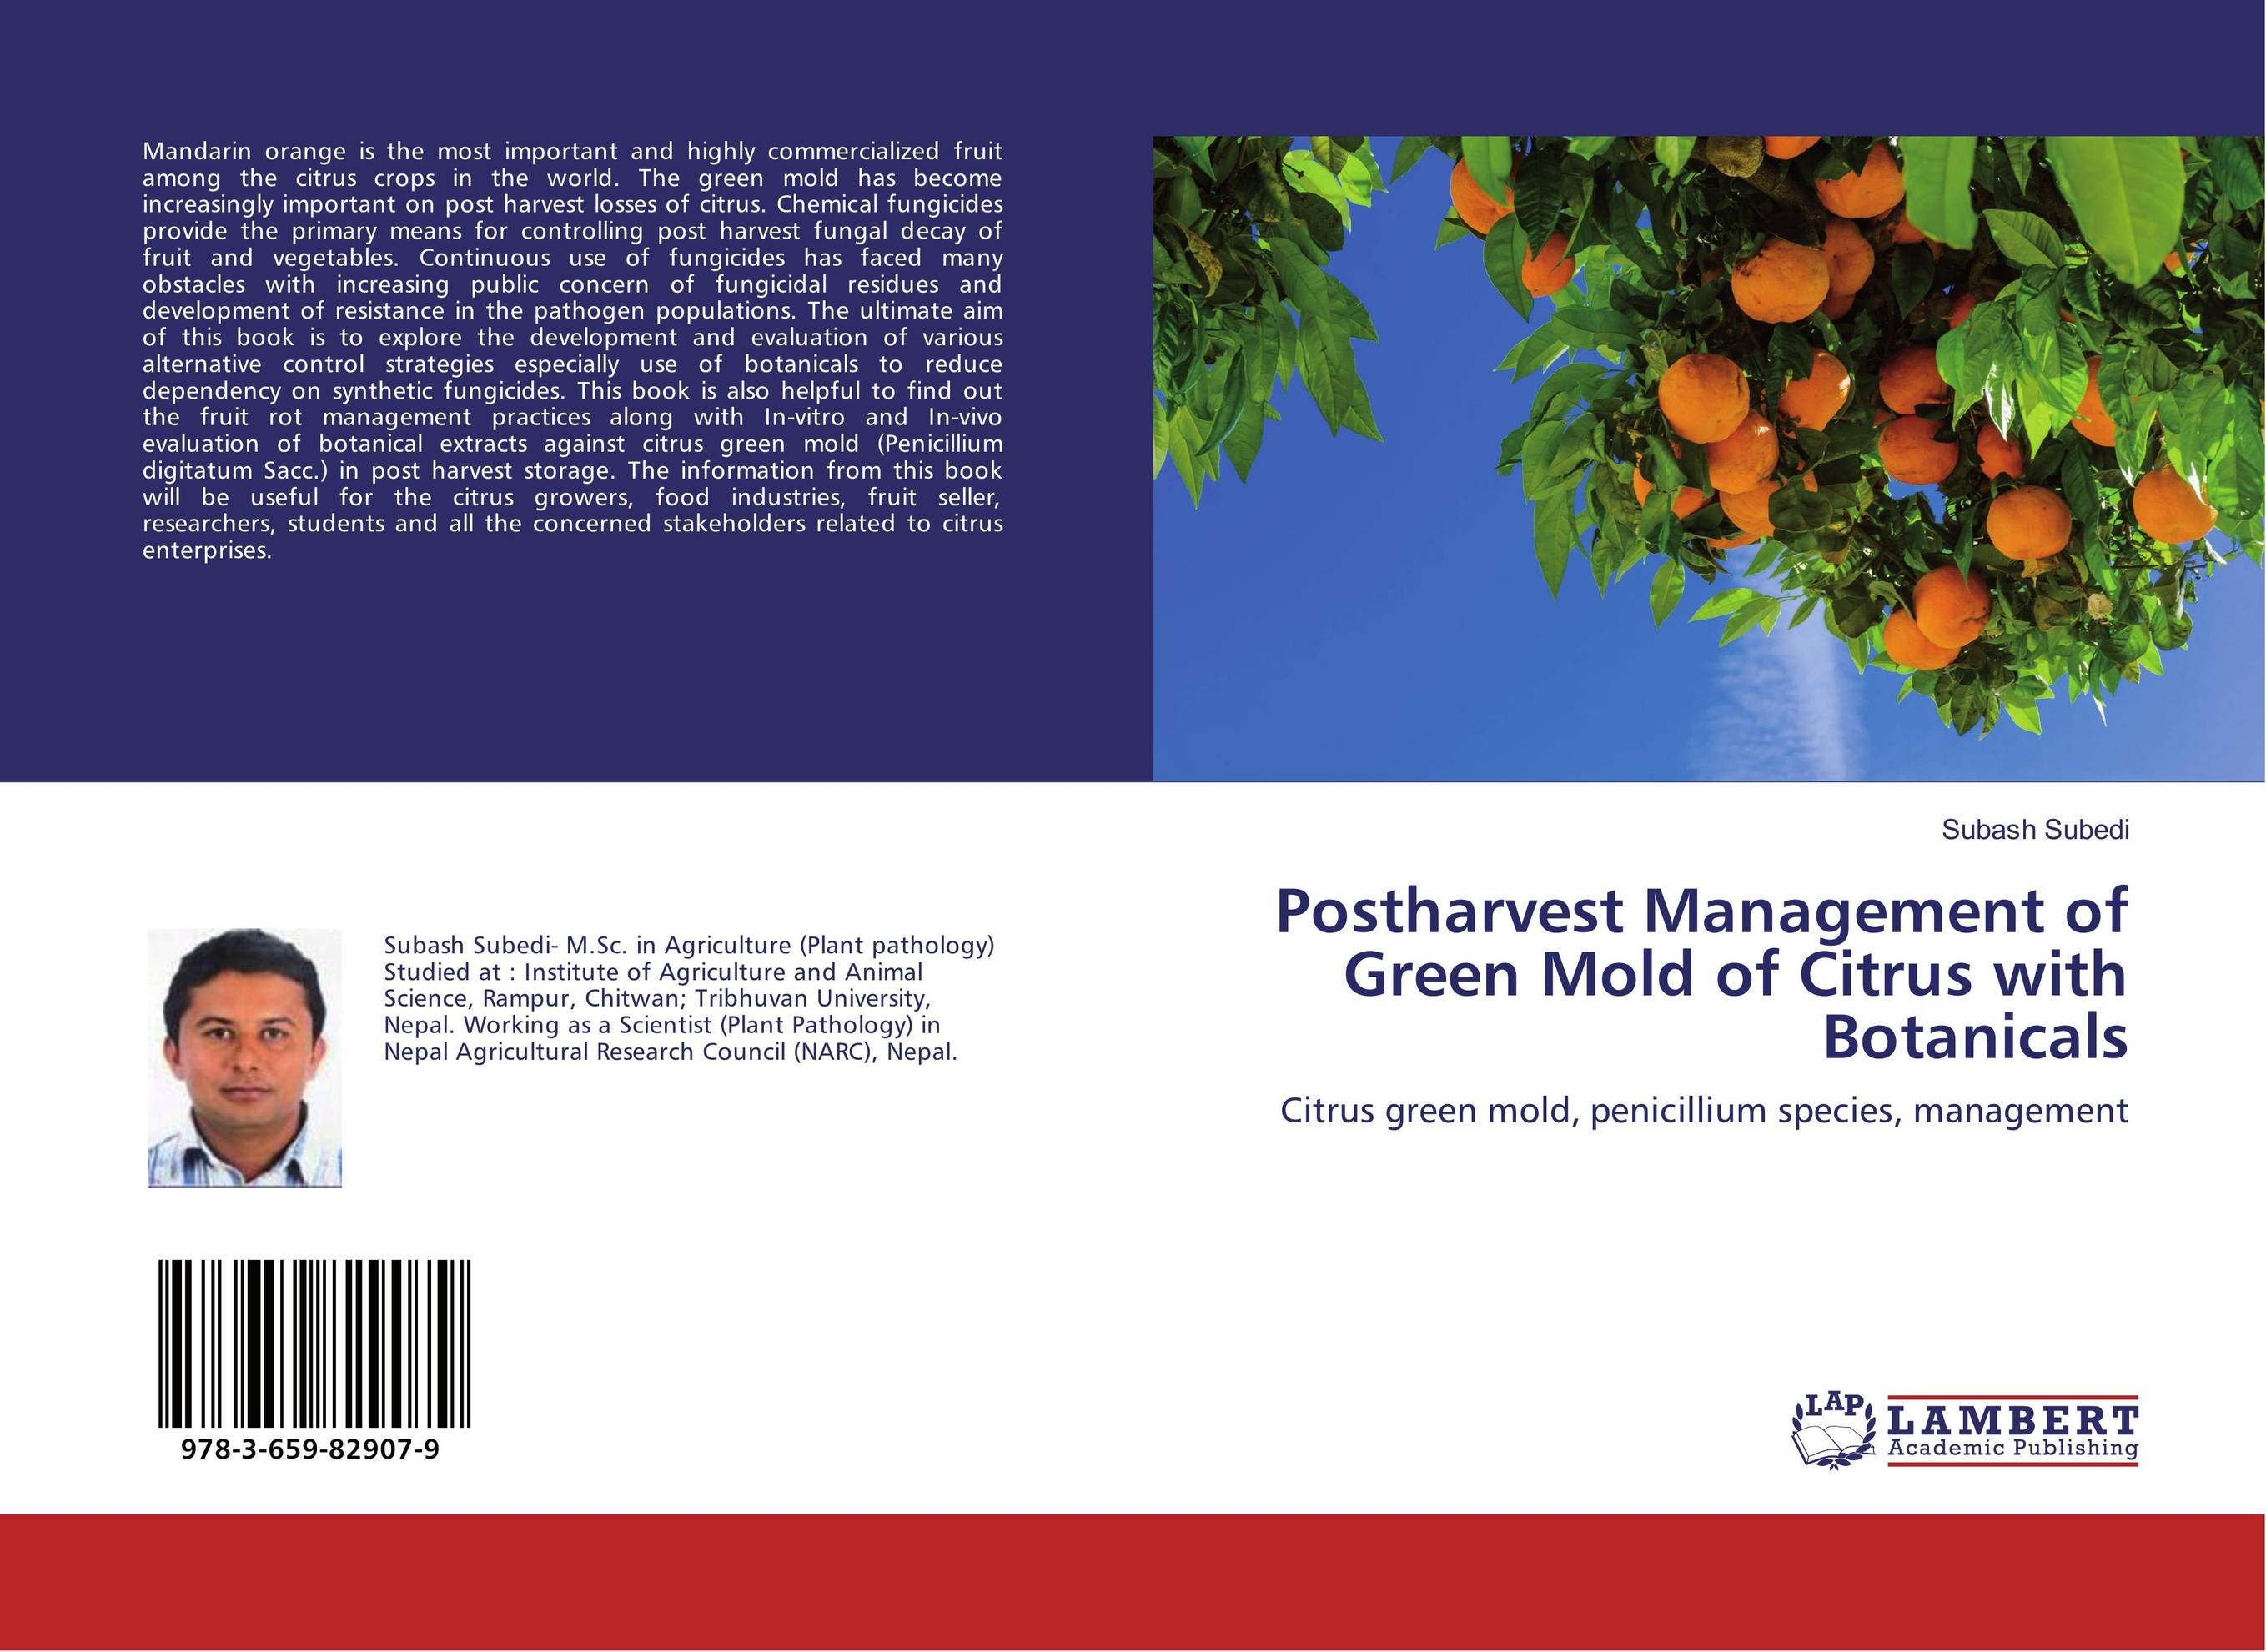 Postharvest Management of Green Mold of Citrus with Botanicals